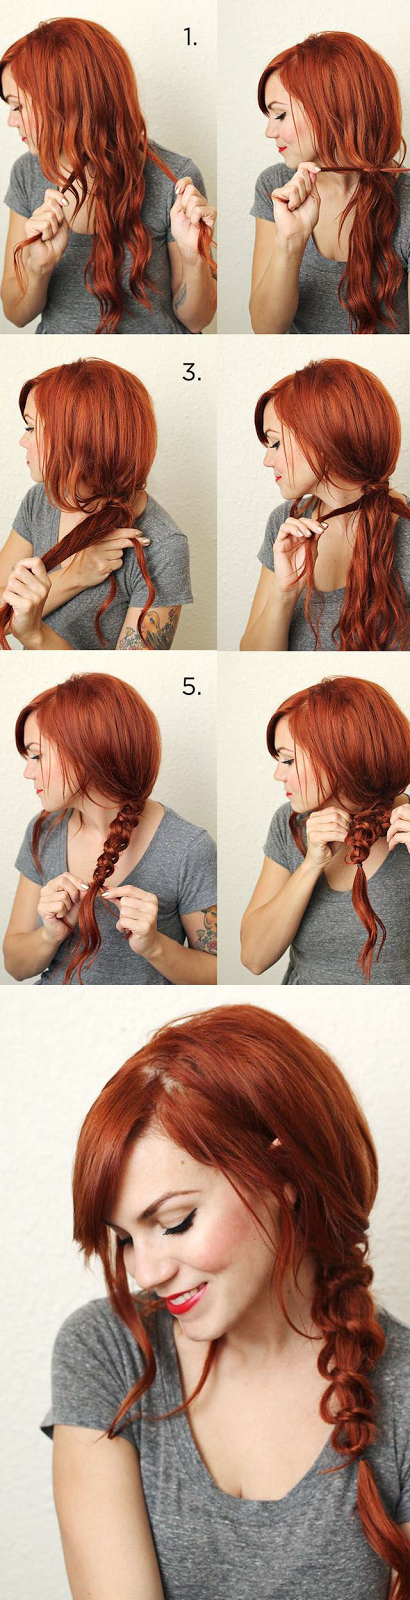 Simple Messy Knotted Braid